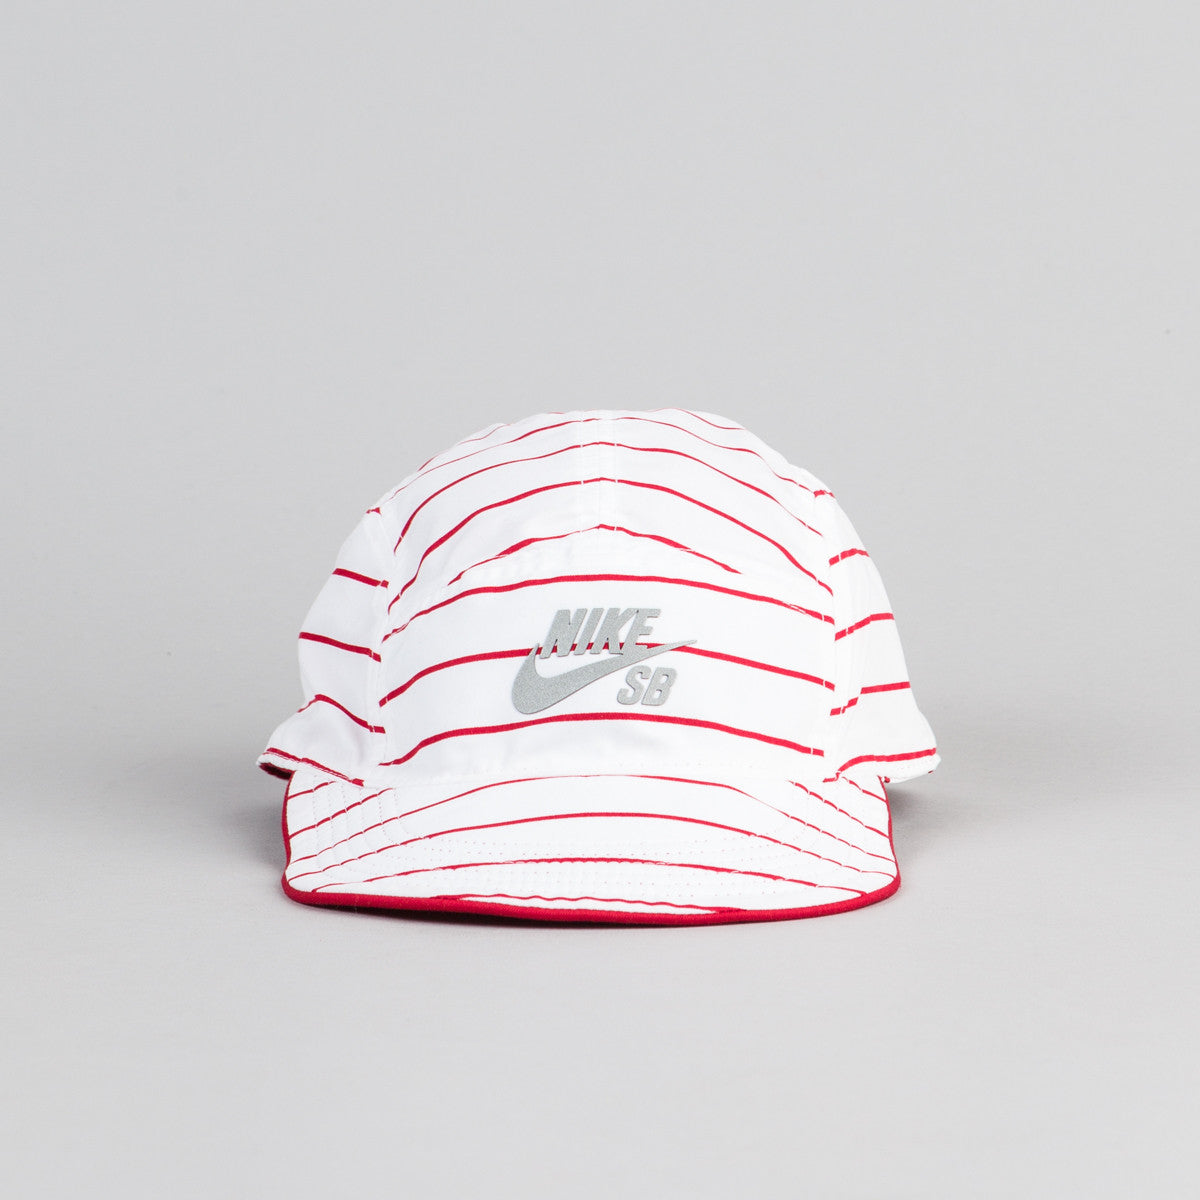 Nike SB Reversible 5 Panel Cap - Gym Red / White